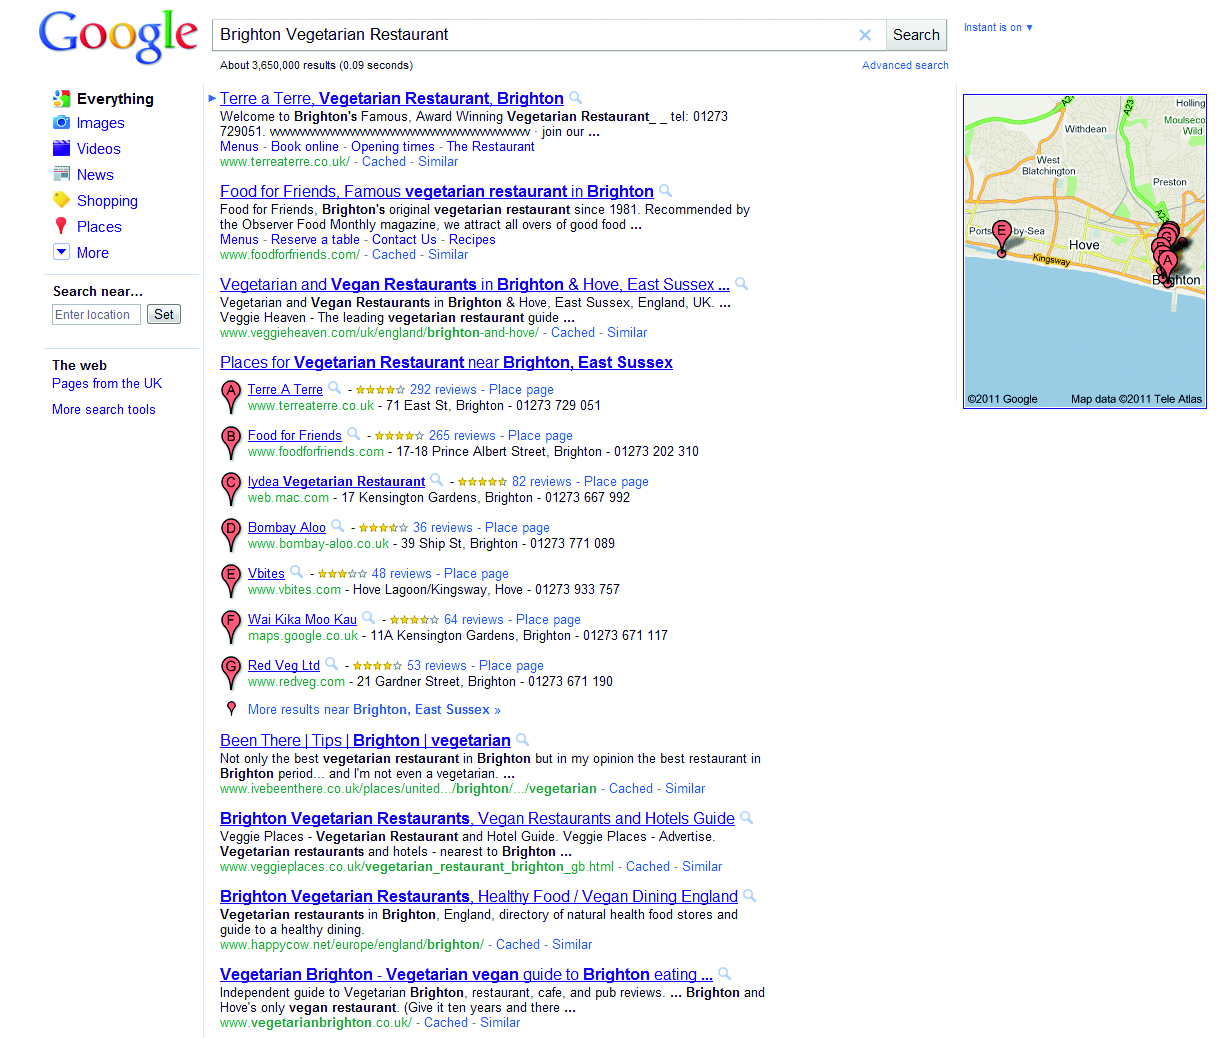 The highlighting of Places in Google's listings has revolutionised local search